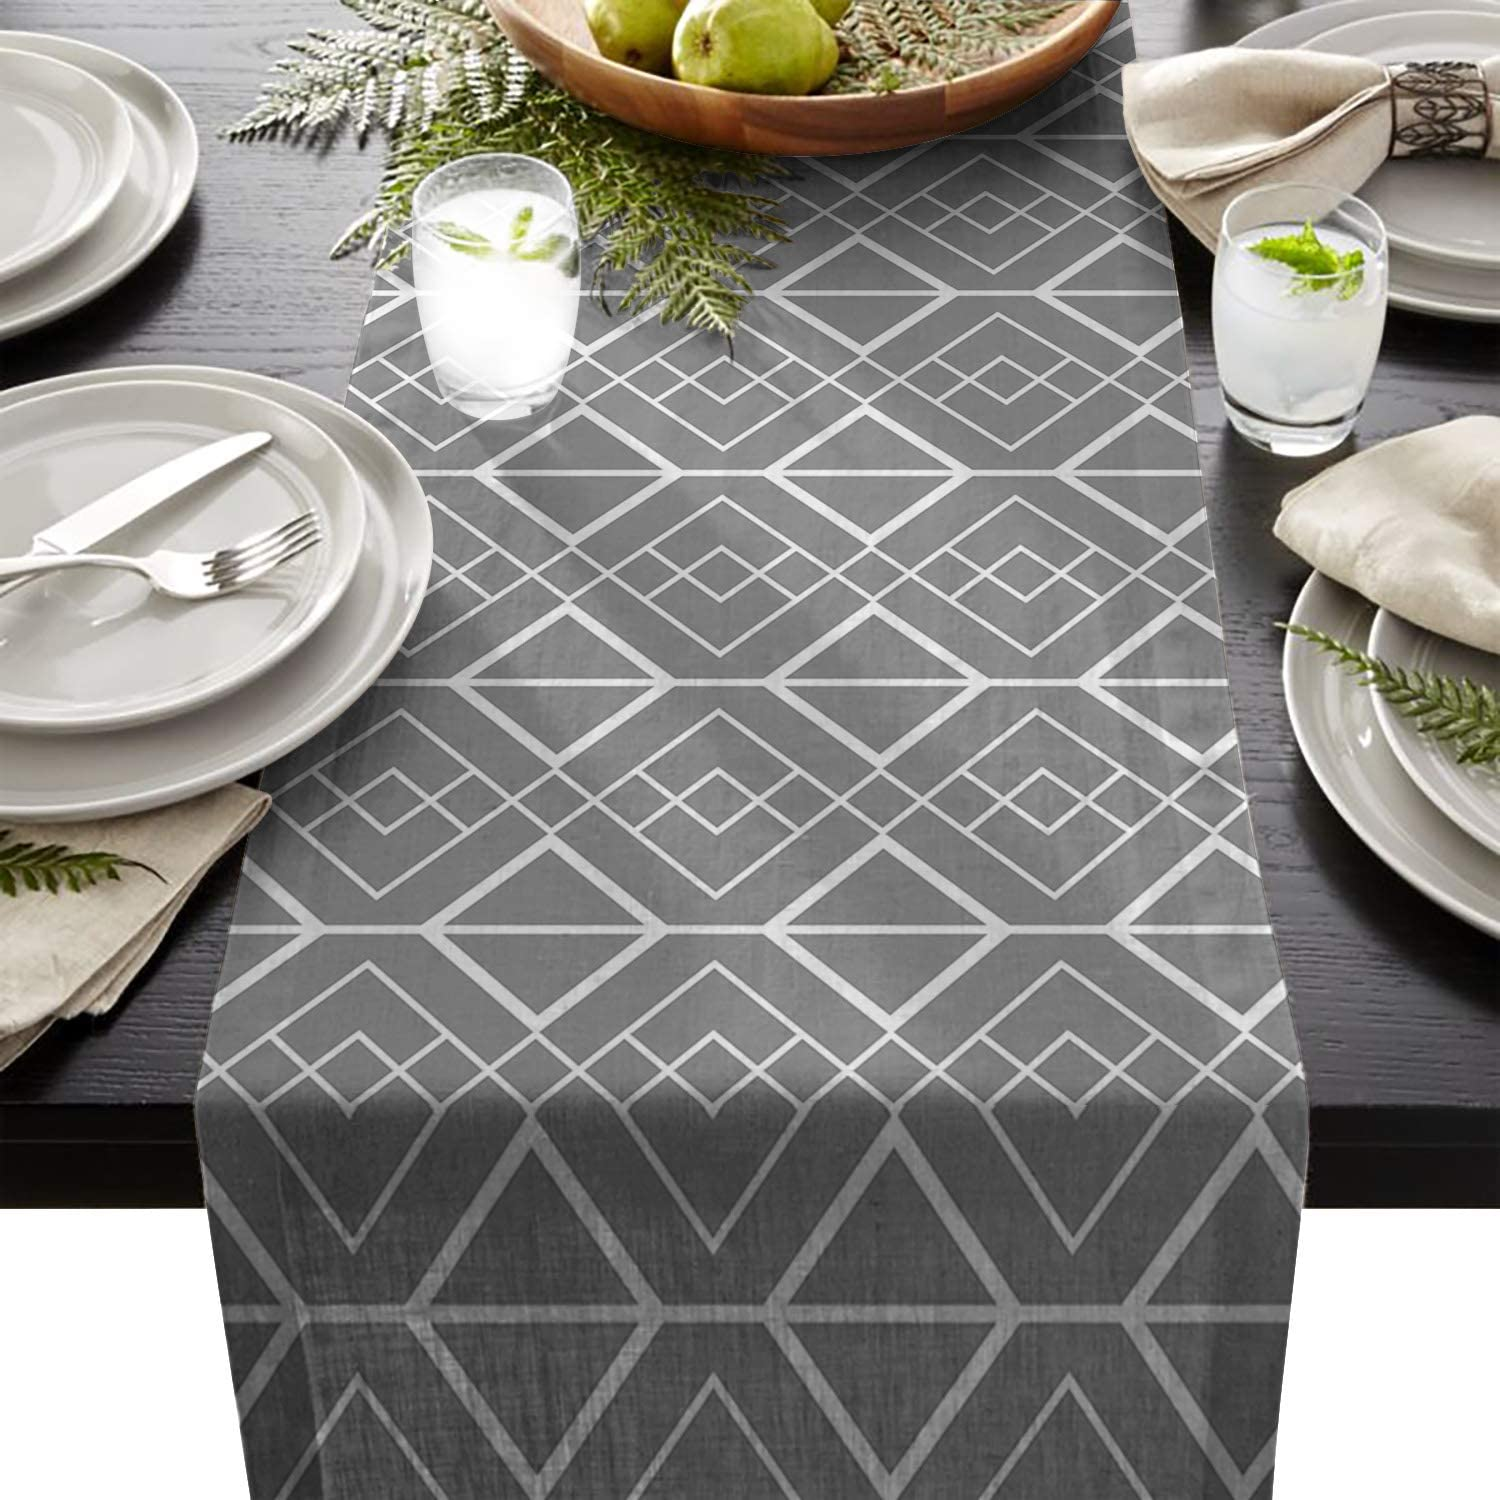 Beauty Decor Faux Burlap Table Runners Classic Natural Dresser Cover 13x90inch Table Runner Event Party Supplies Fabric Decorations for Wedding Birthday Baby Shower - Rhombus Geometric Grey White